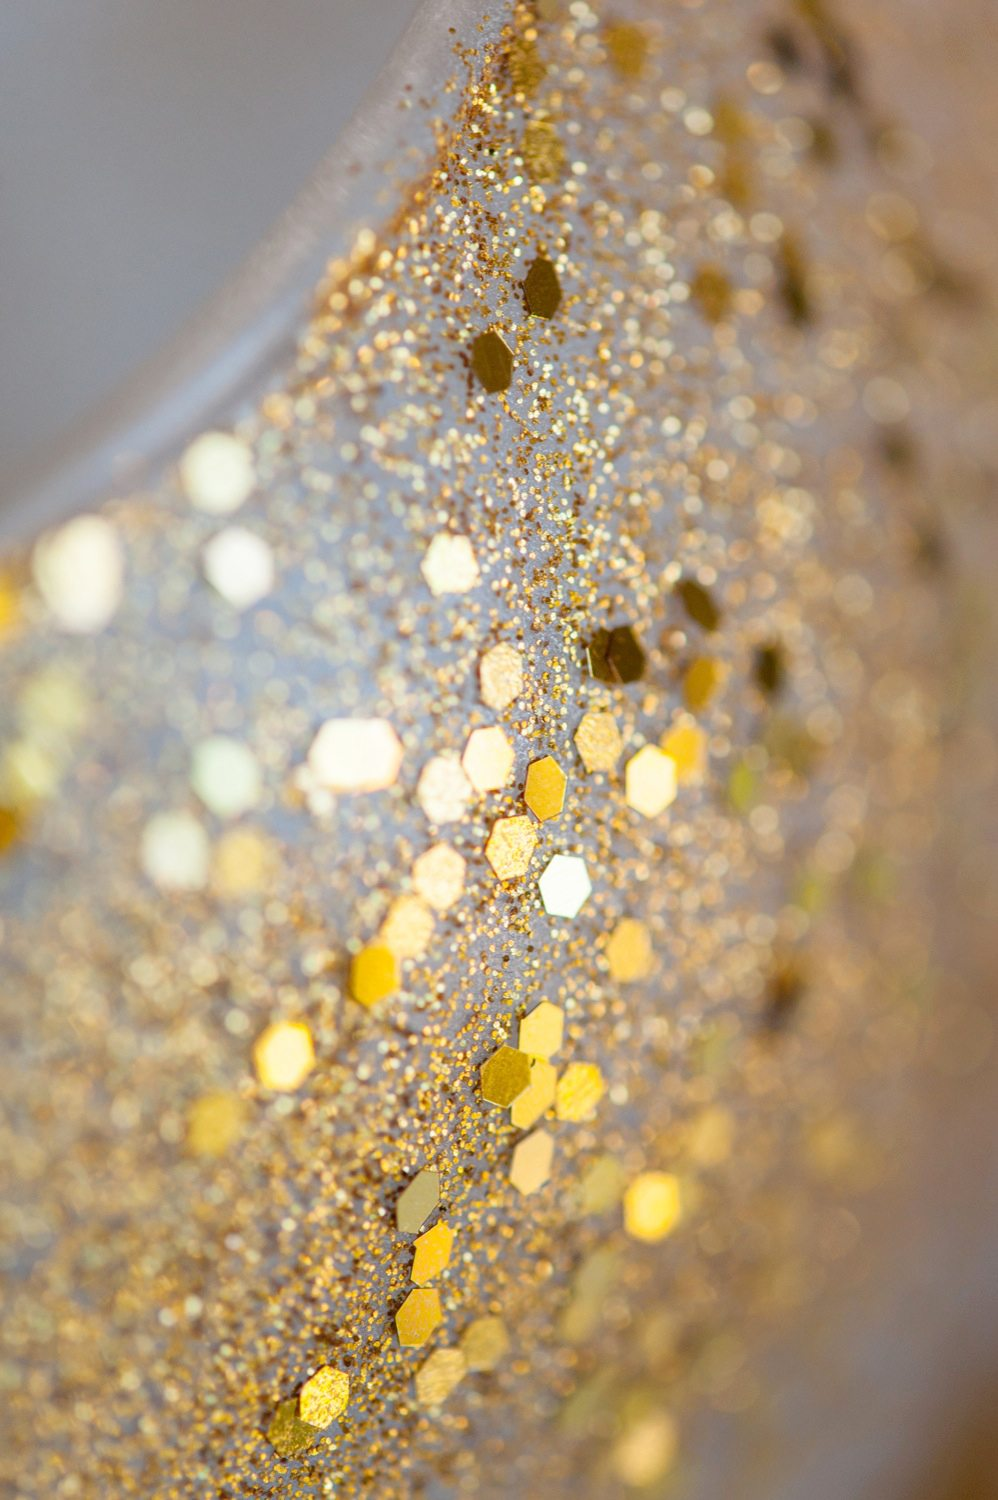 Diy gold confetti glitter vase the sweetest occasion diy gold confetti glitter vase by cydconverse reviewsmspy